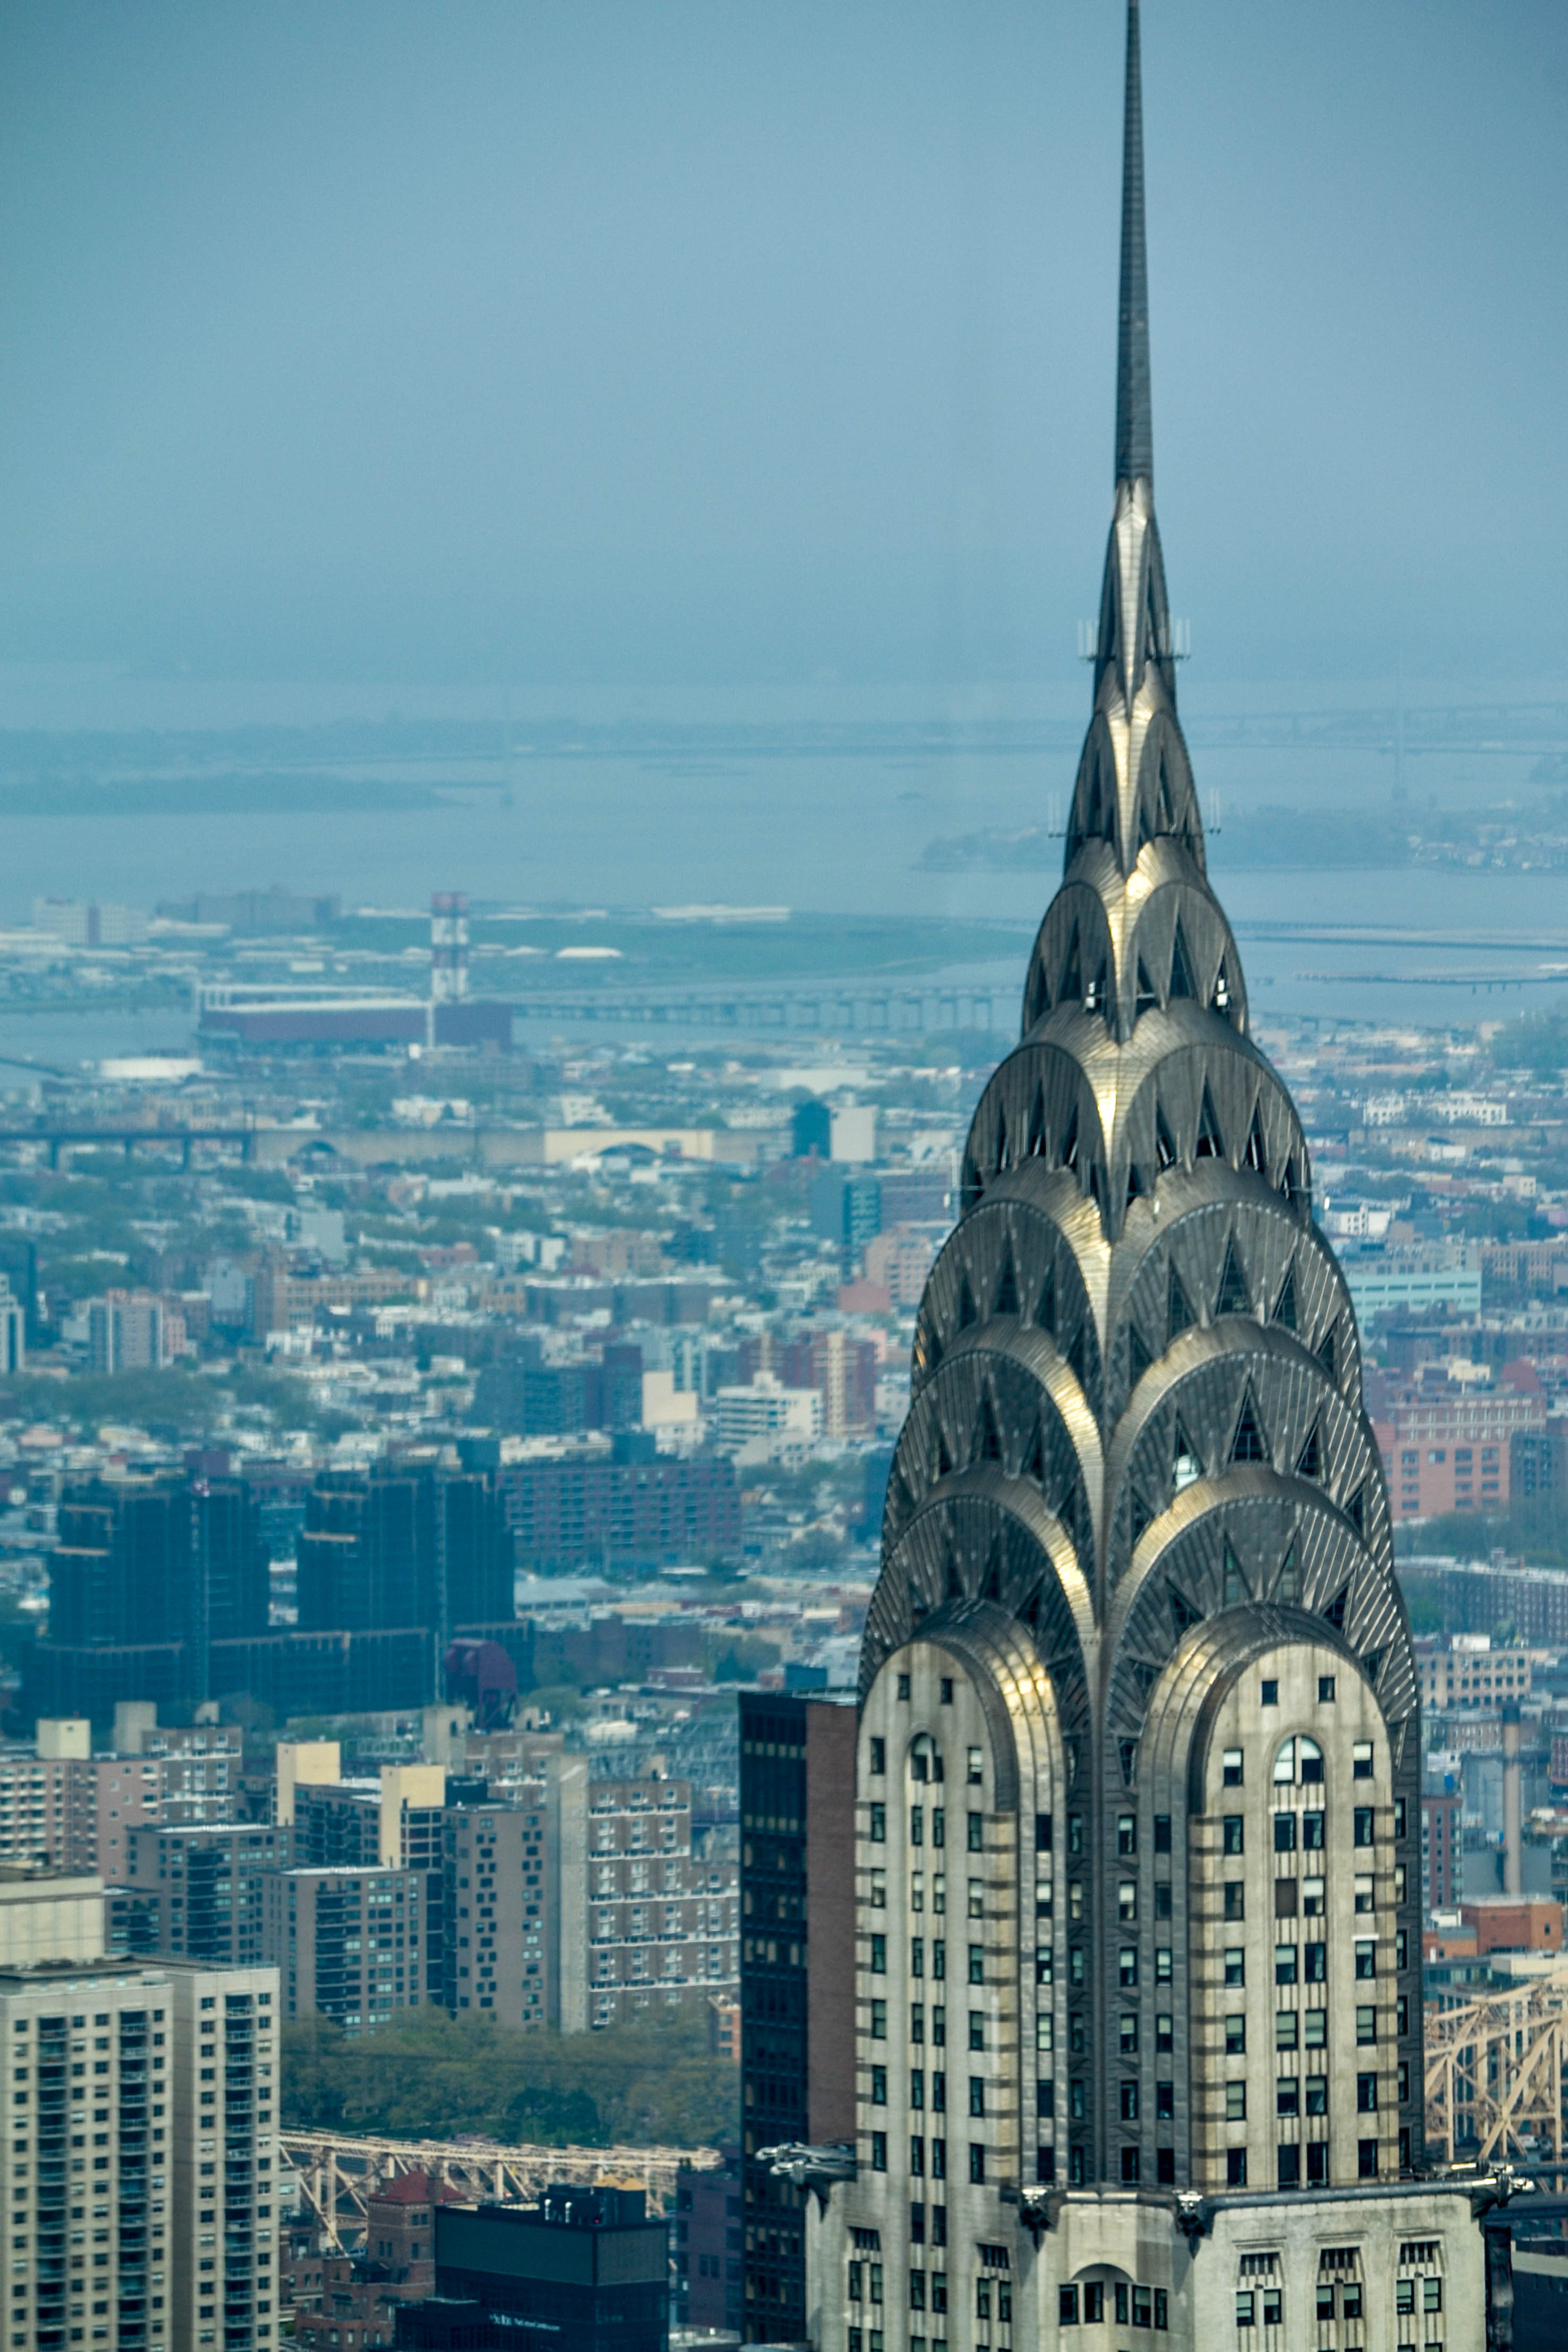 Empire State Building, New York City, Chrysler Building